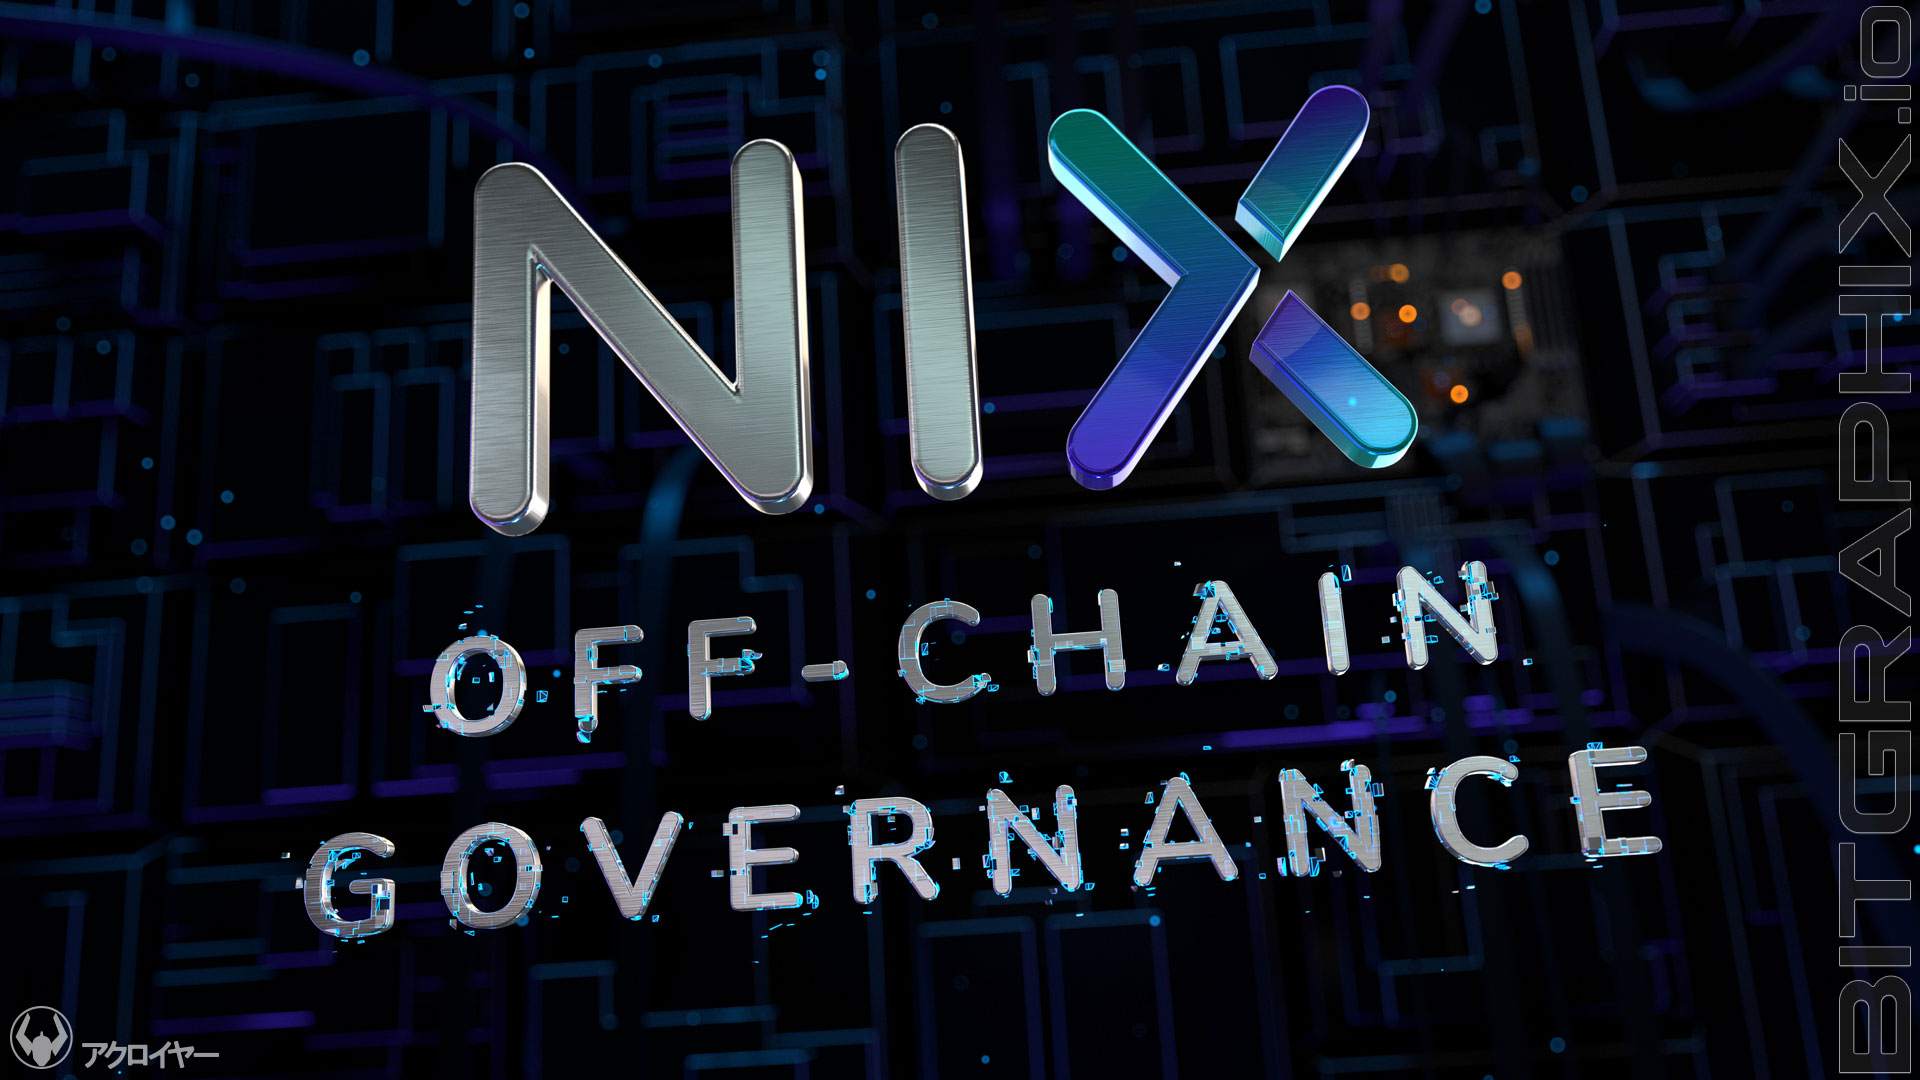 NIX-Platform-Ghost-Protocol-promotional-animation-still-frame-logo-build-detail-off-chain-governance-text-3d-vfx-redshift-render